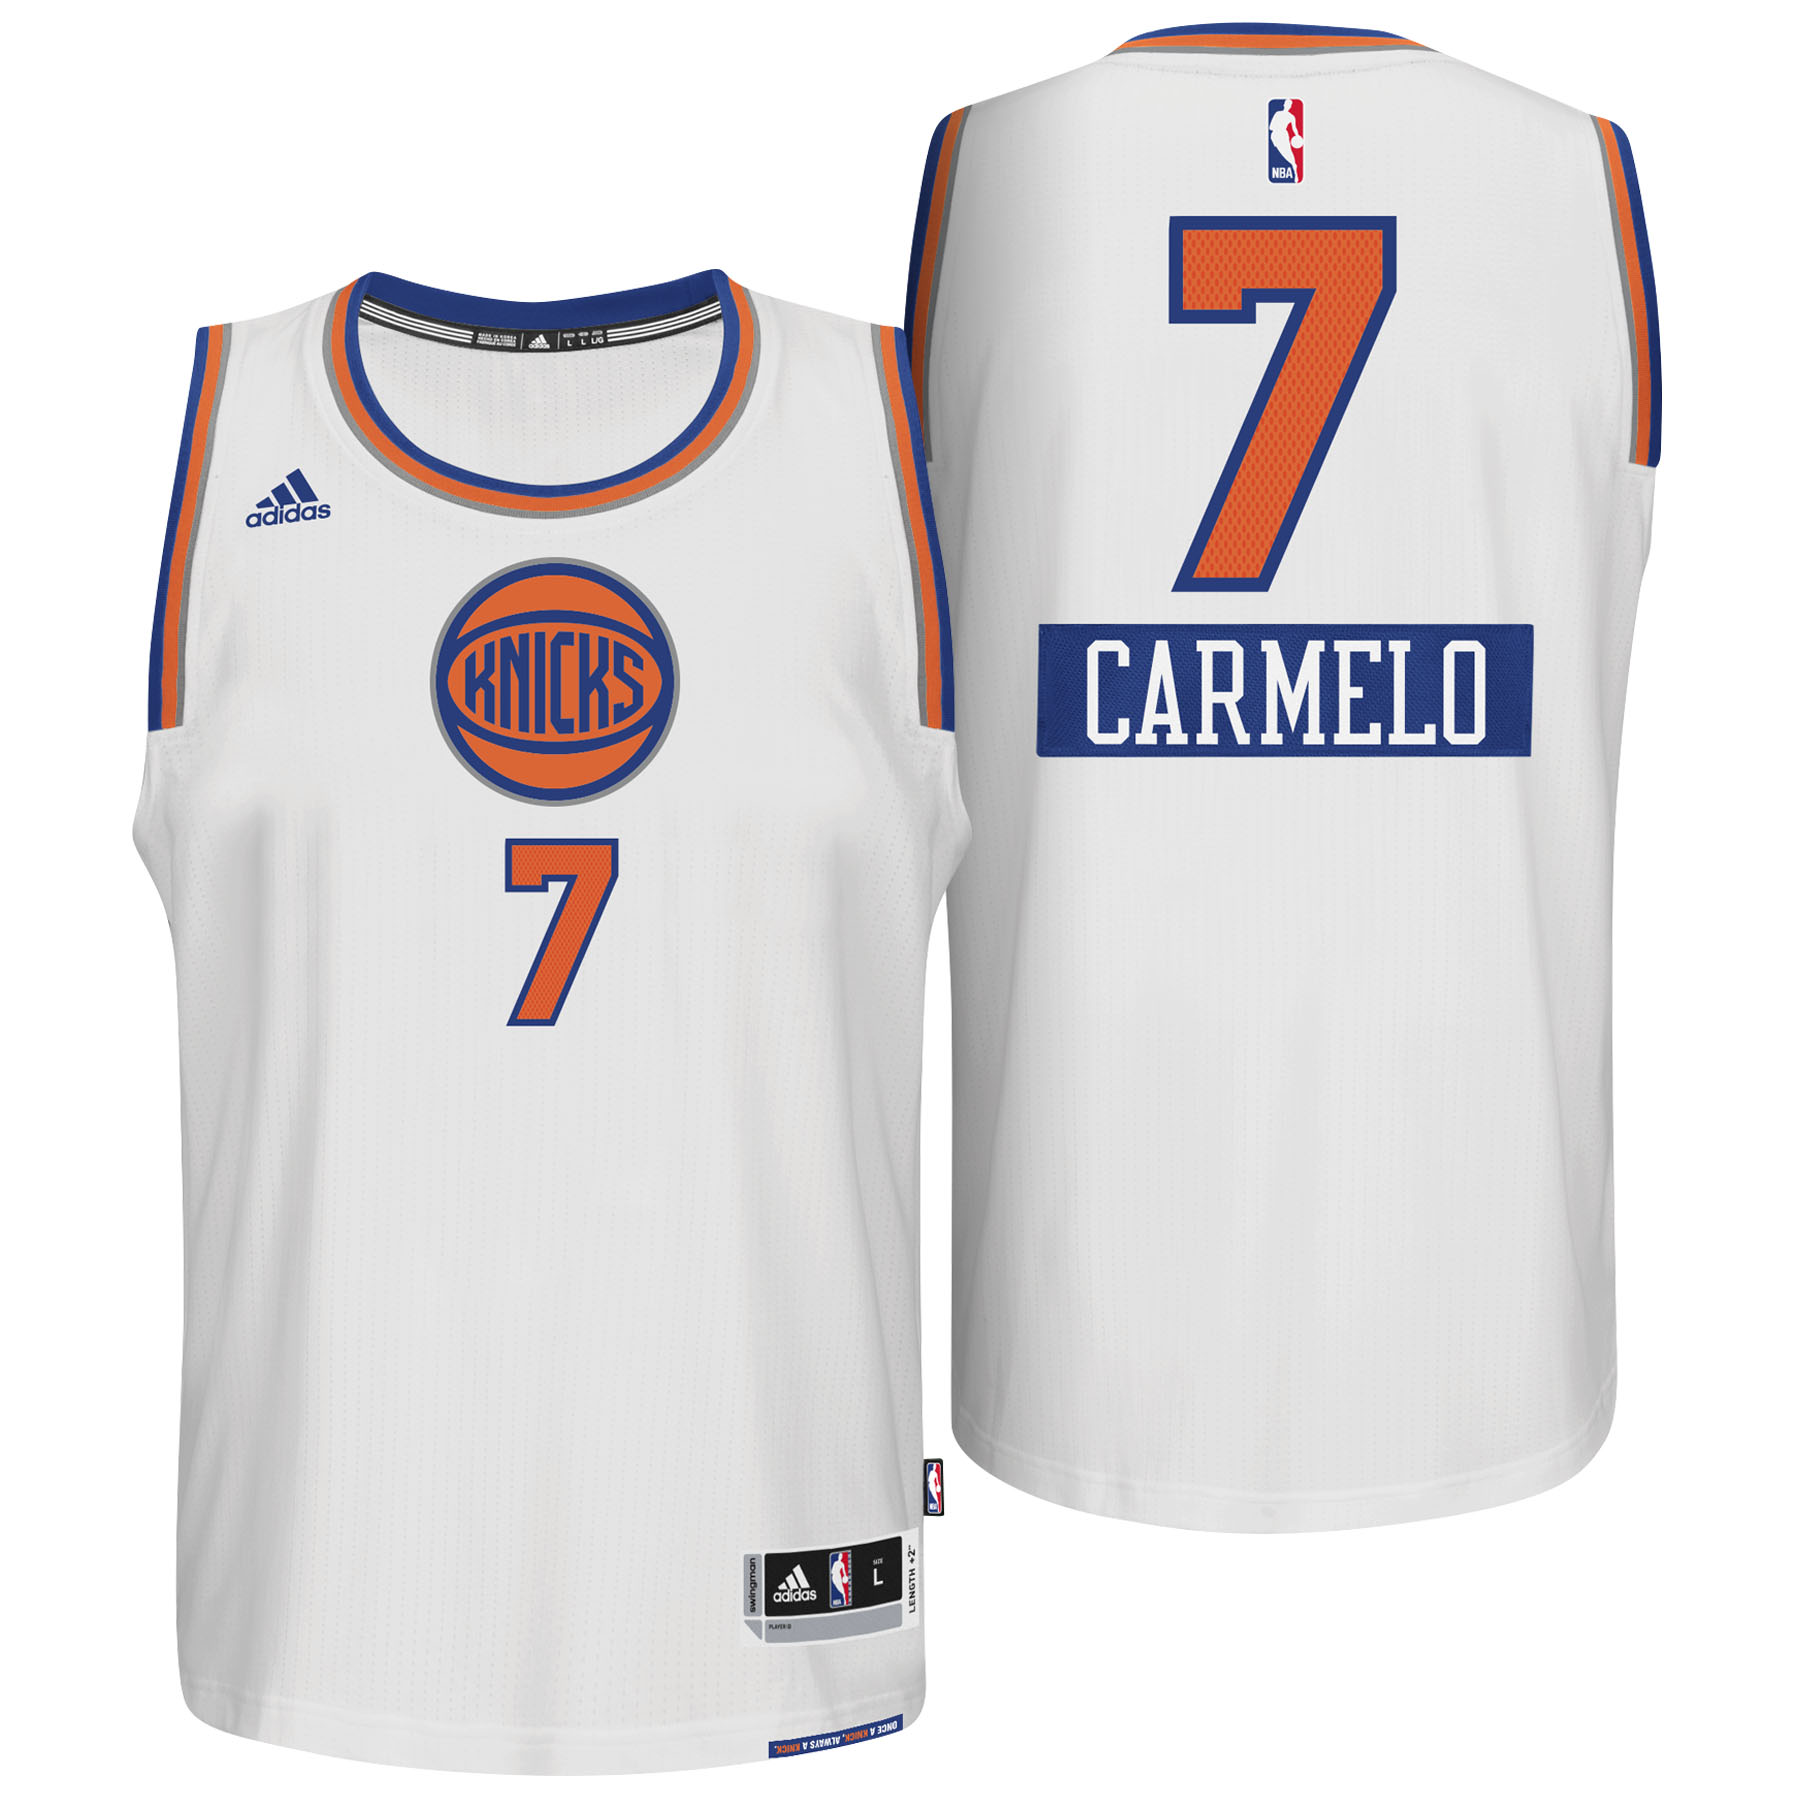 New York Knicks X-mas Big Logo Swingman Jersey 2014 - Carmelo Anthony - Mens